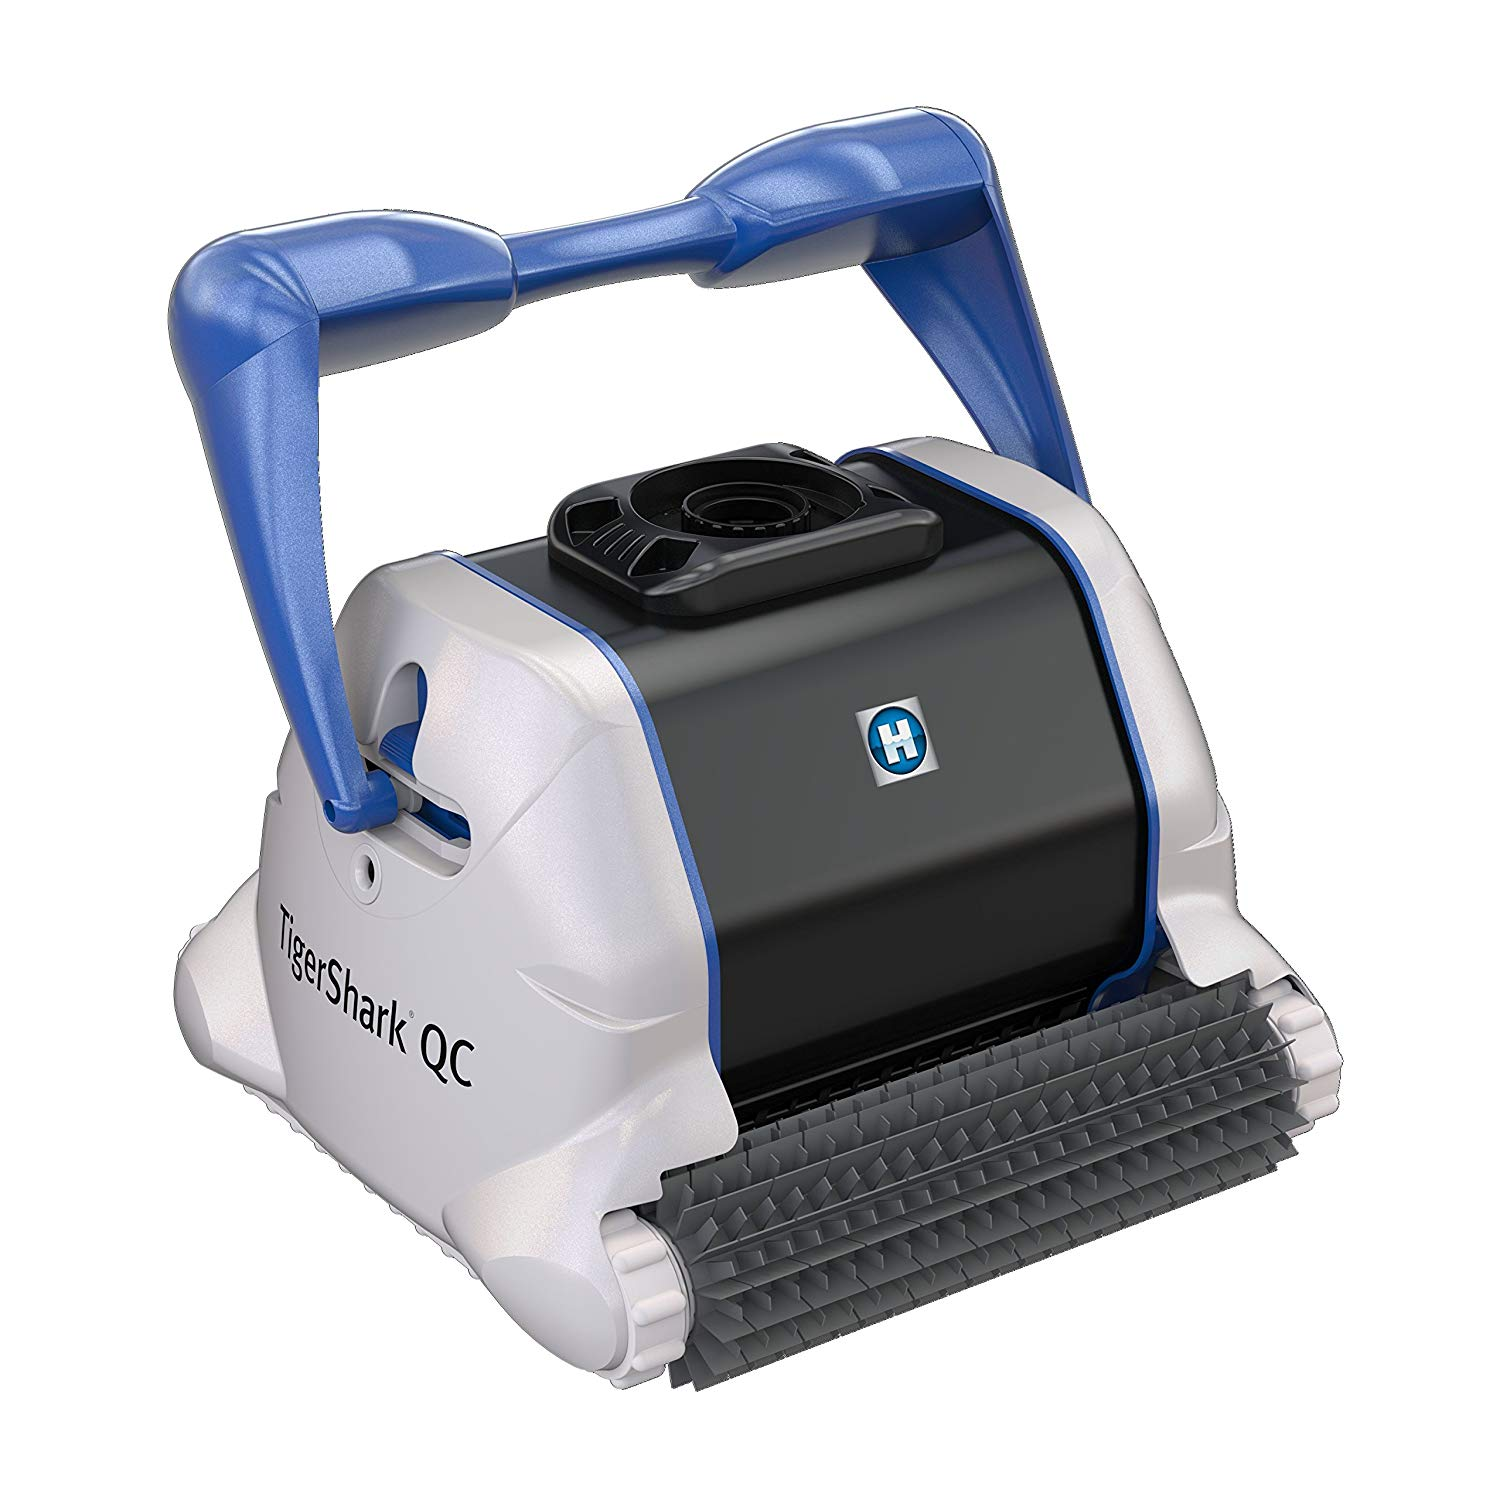 Hayward RC9990CUB TigerShark Robotic Pool Vacuum Cleaner Review